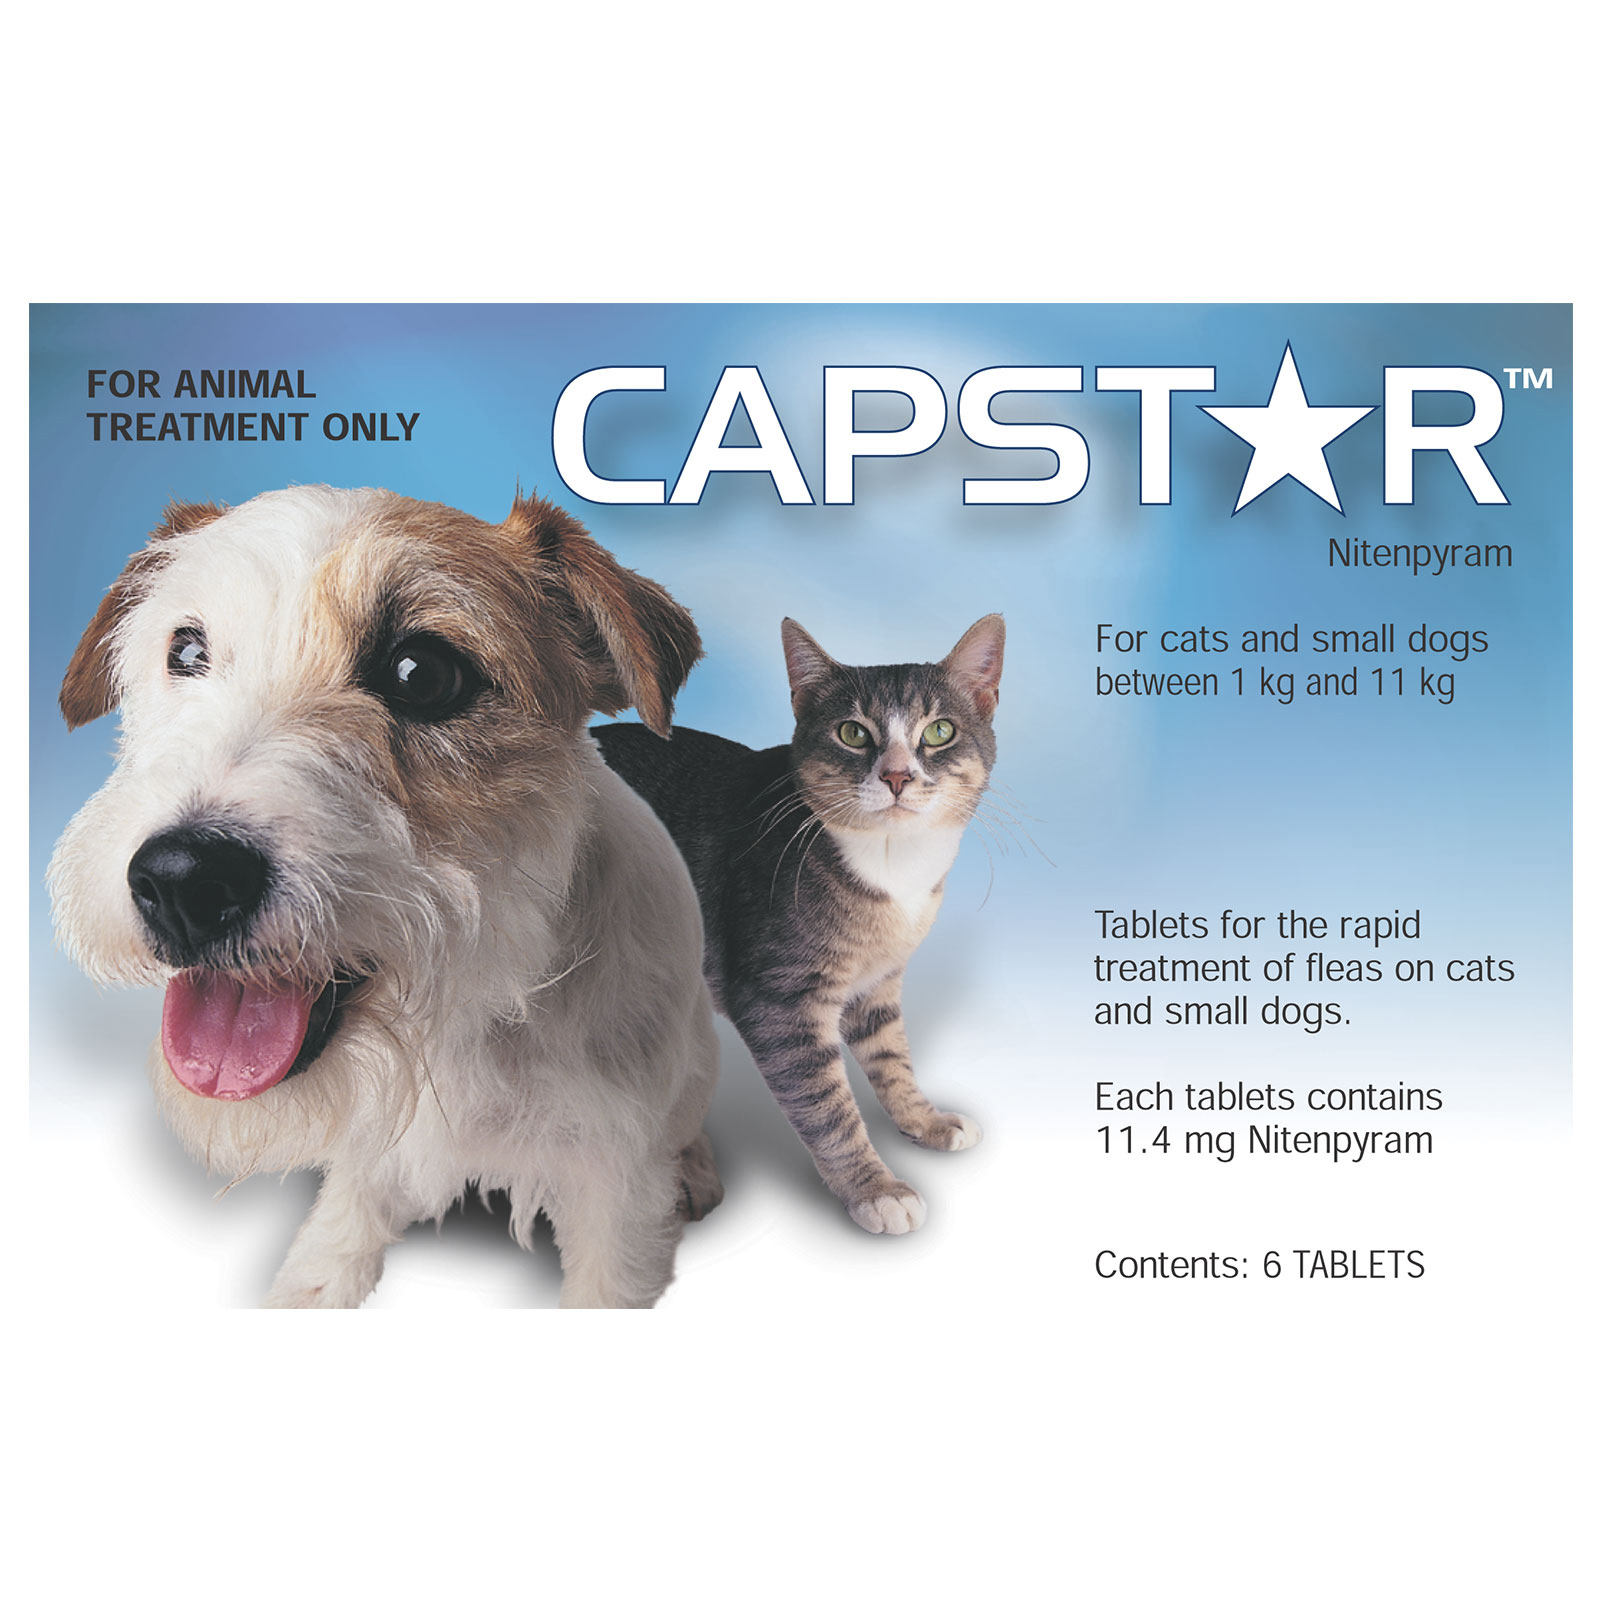 Capstar Flea Control Tablets for Cats for Cats